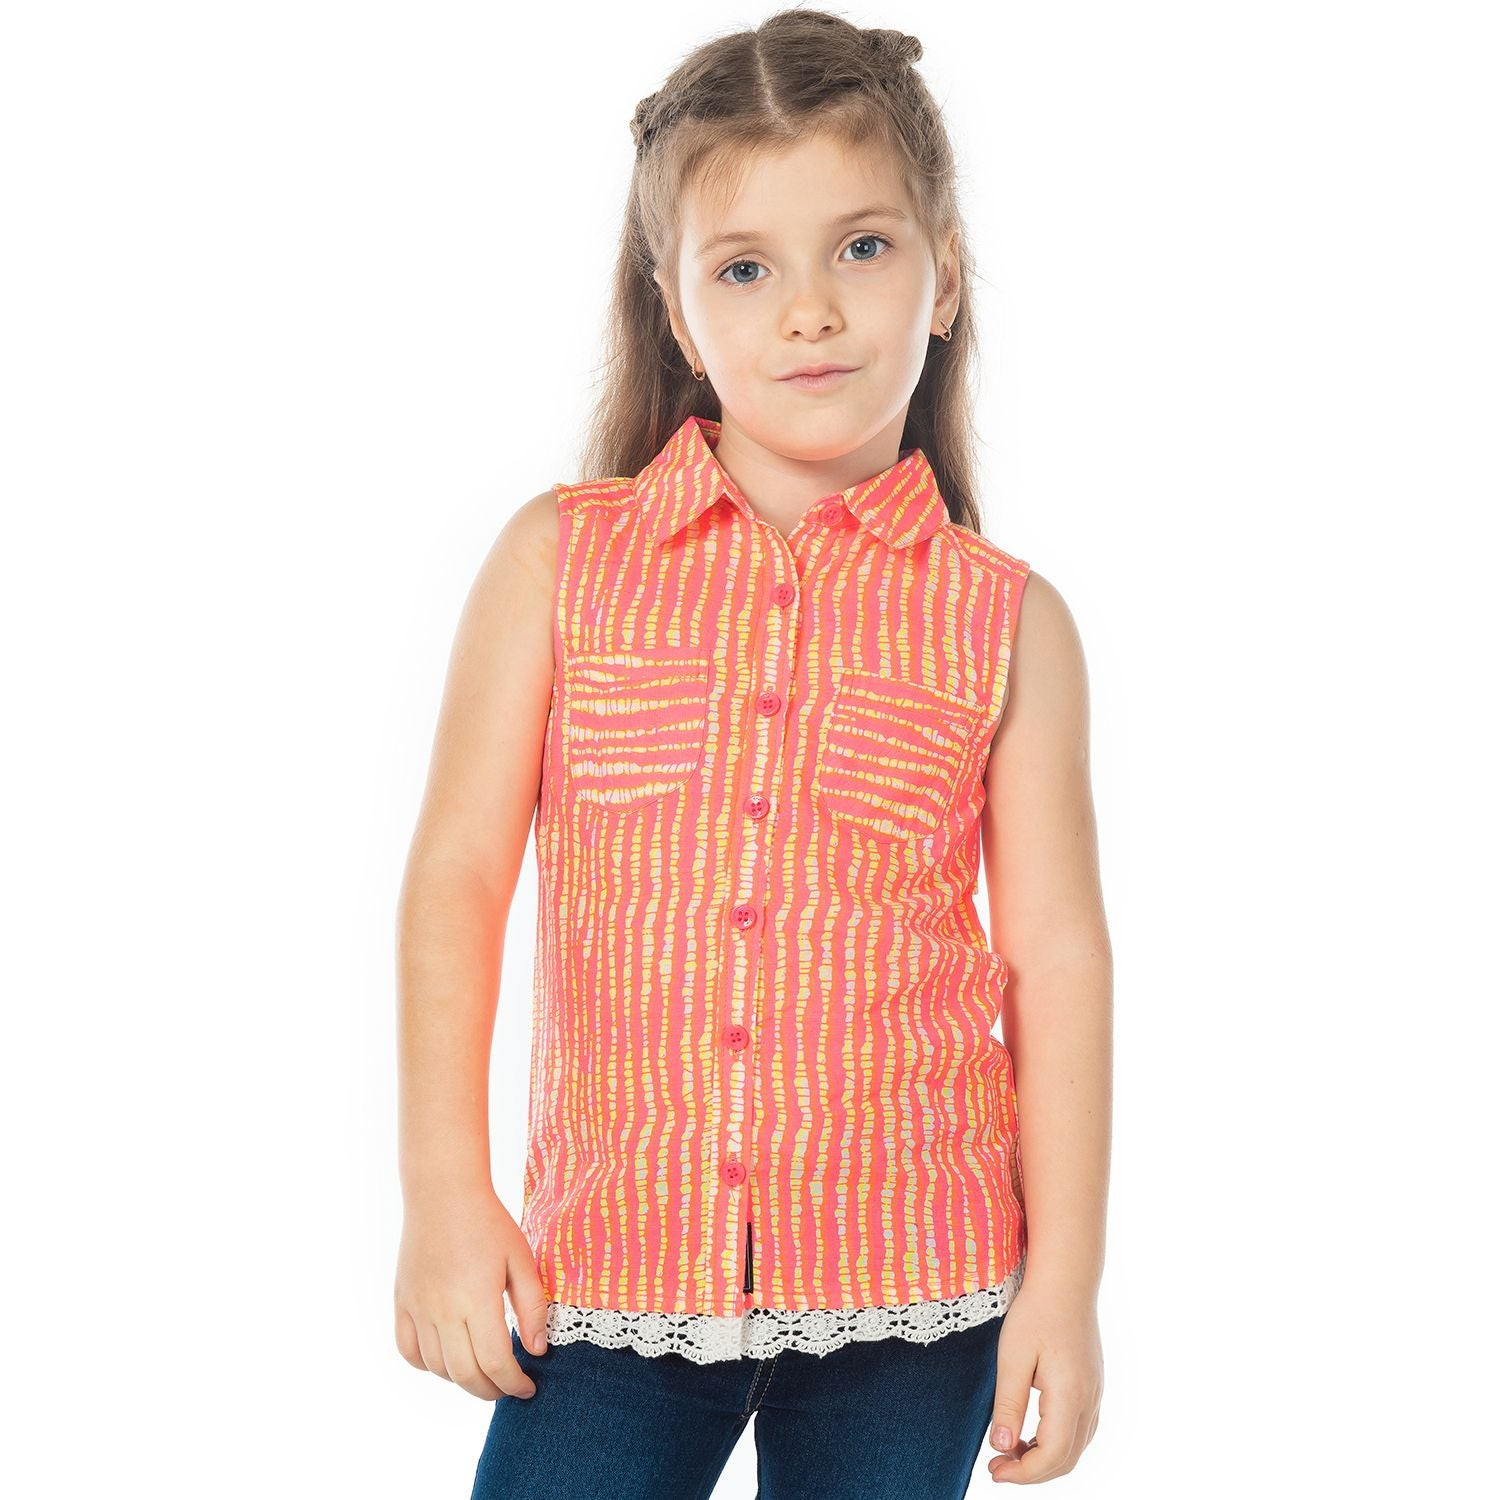 Bright Lace Panel Top for Girls